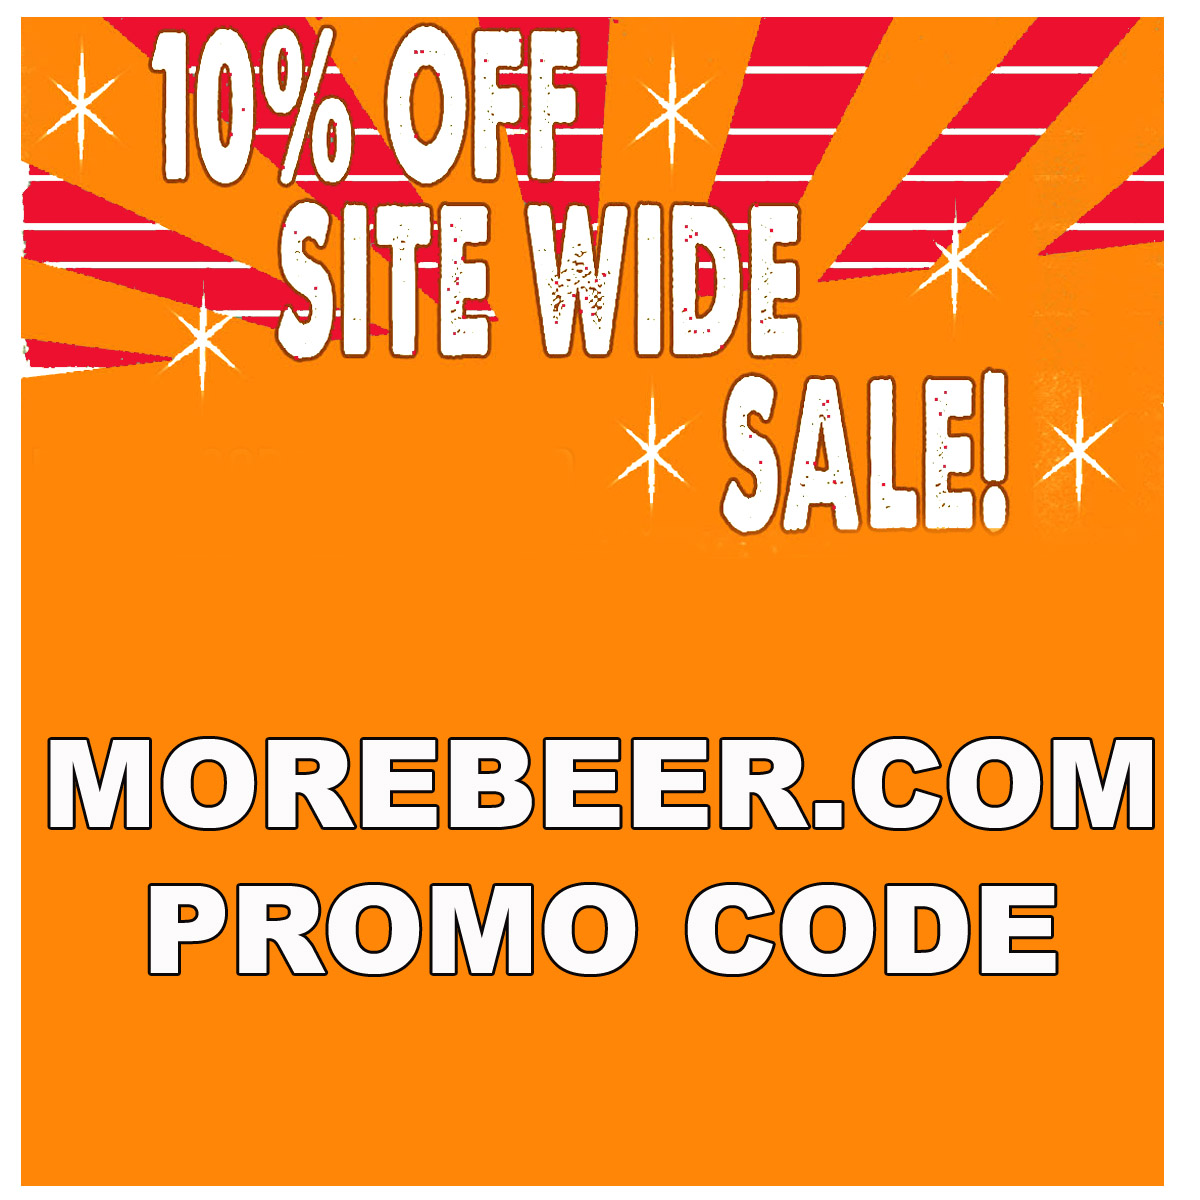 MoreBeer Save 10% Site Wide at MoreBeer.com with this More Beer Promo Code Coupon Code